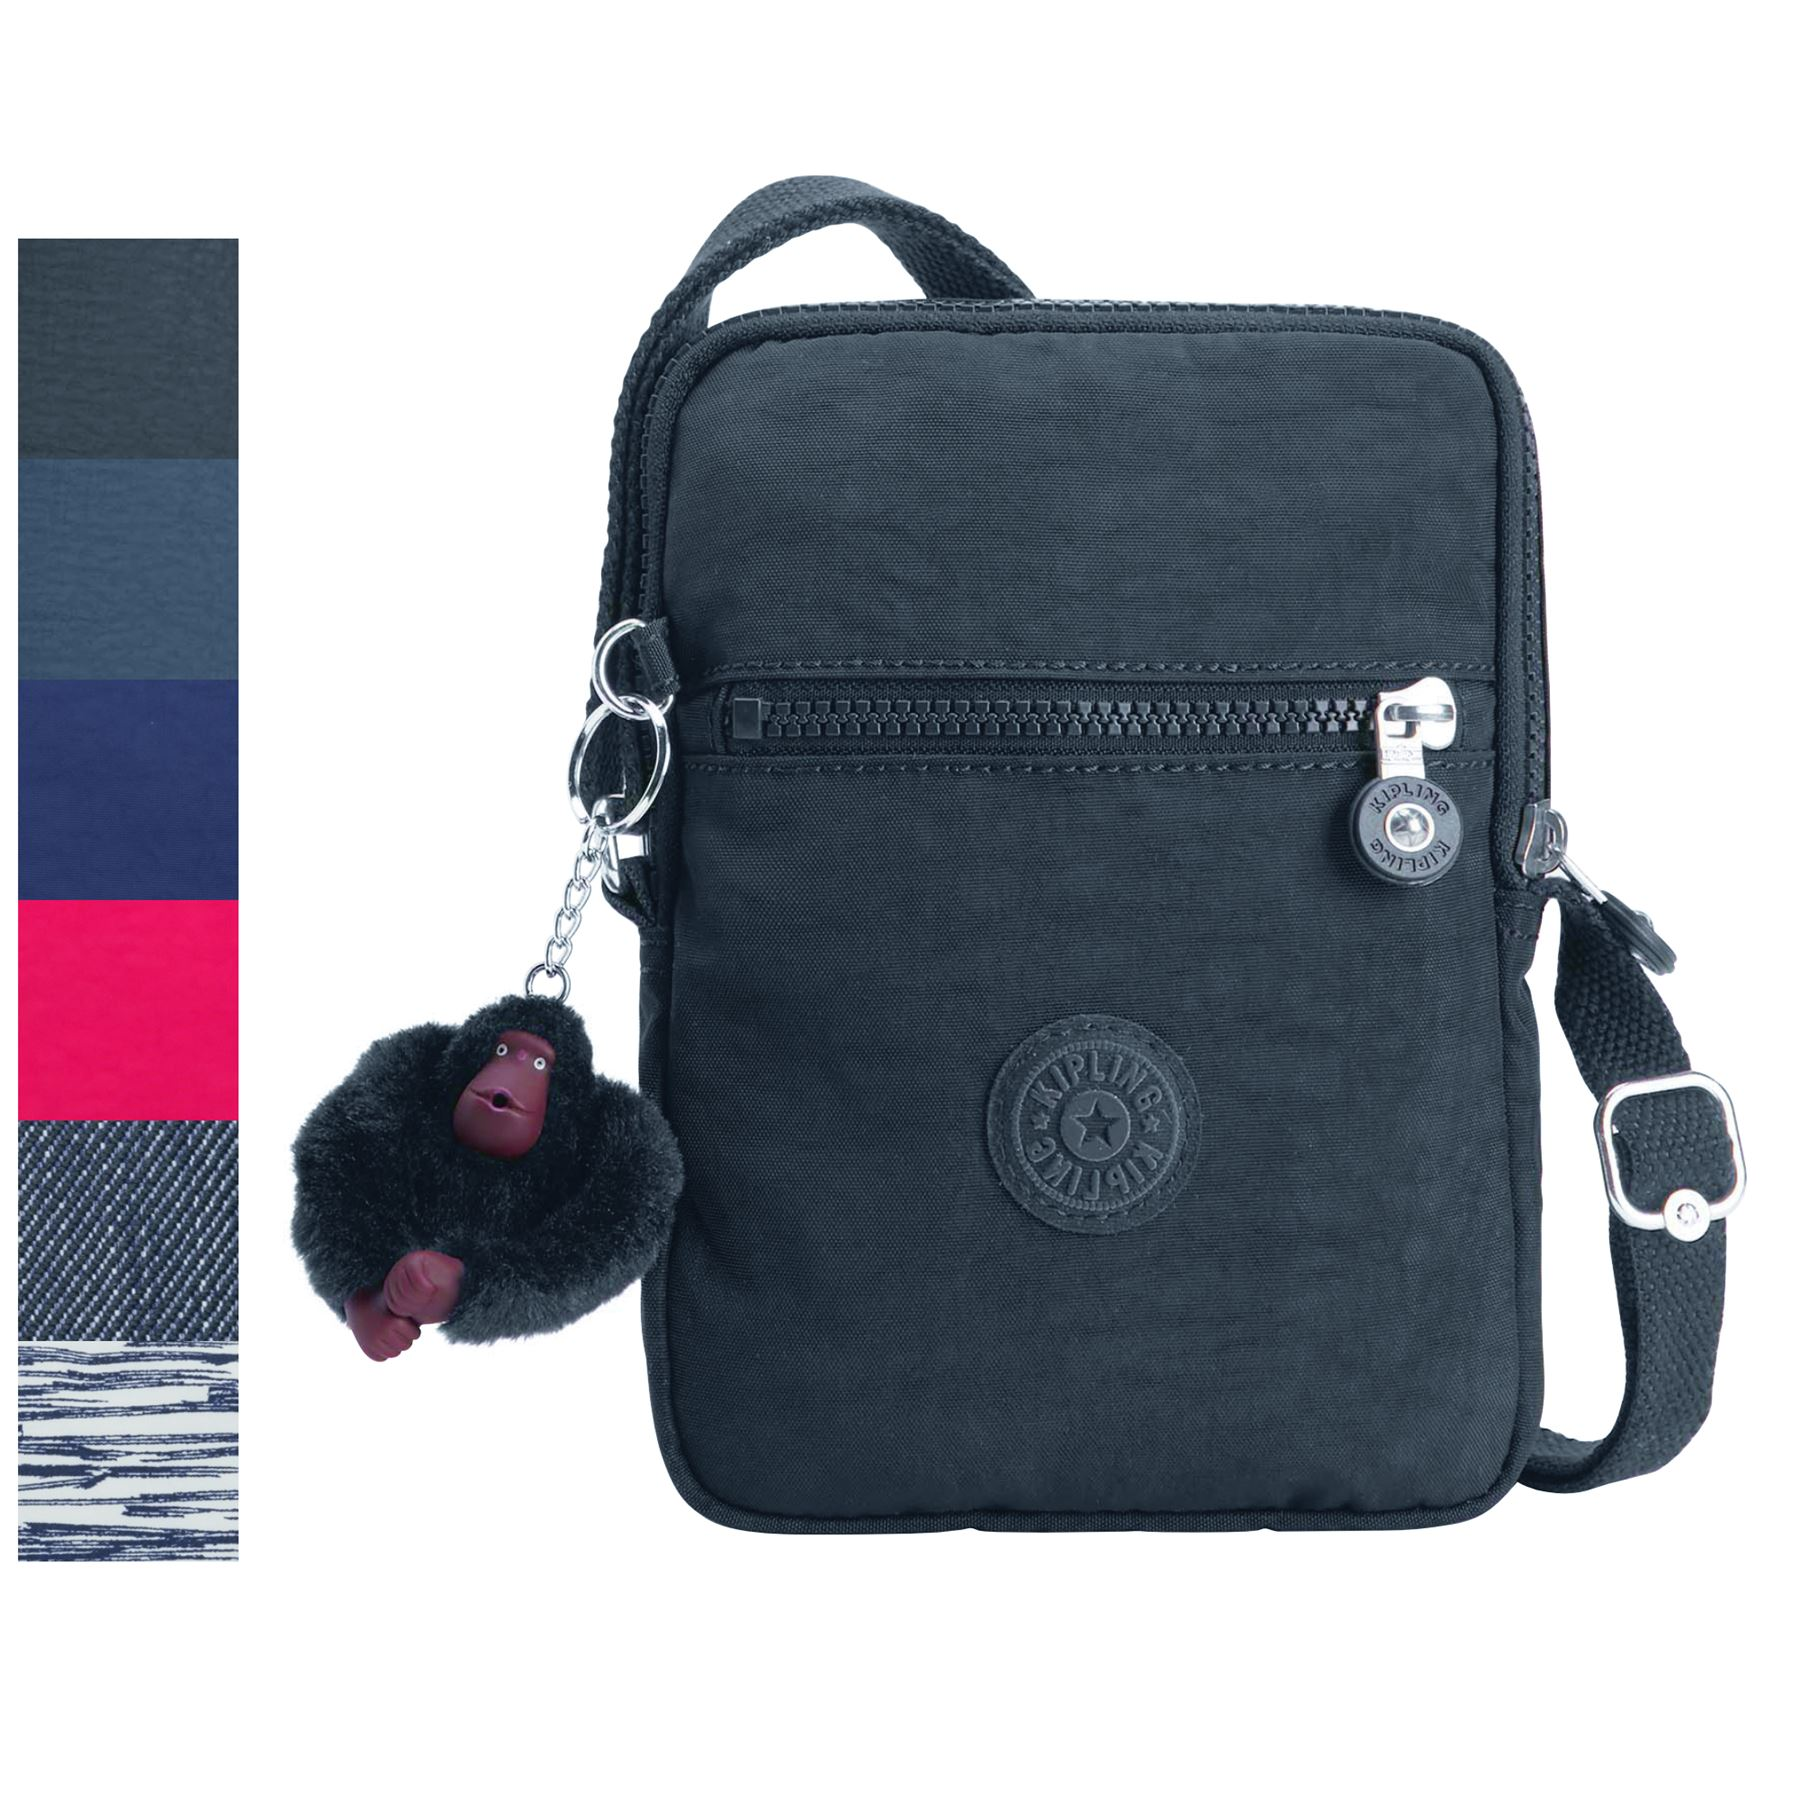 kipling shoulder bag small